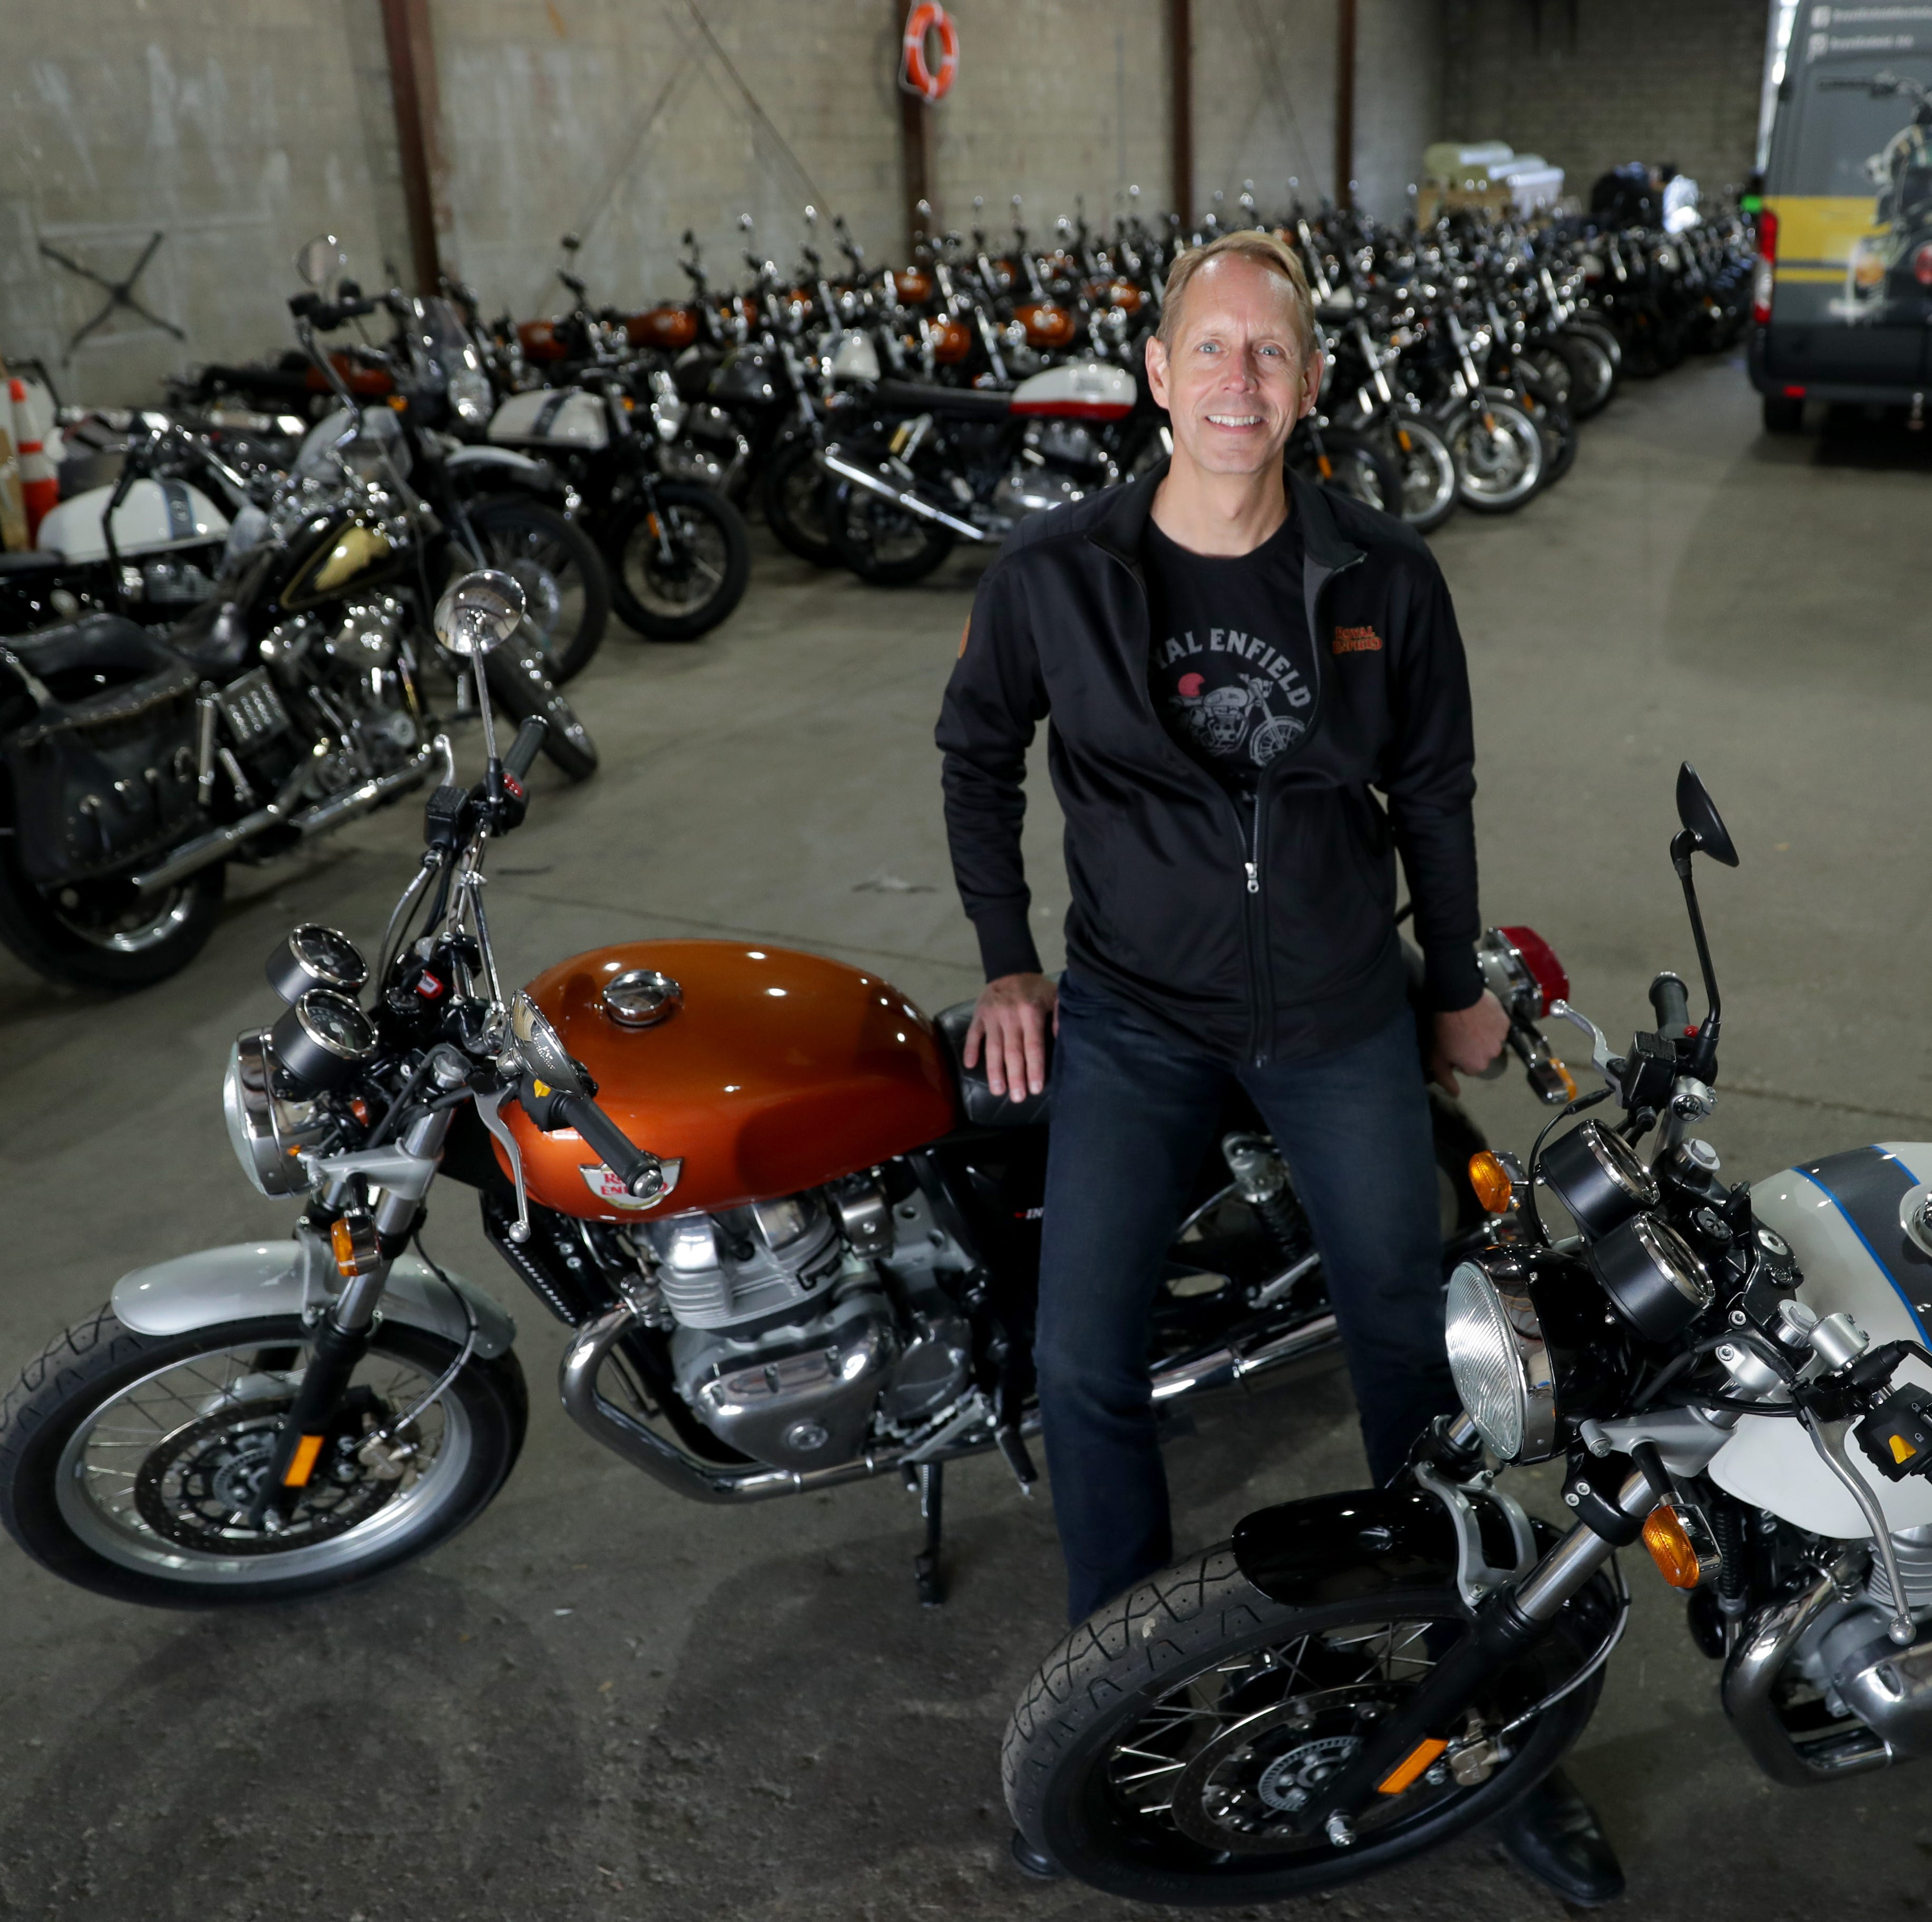 Royal Enfield, the 'other' Milwaukee motorcycle company, finding its way in the U.S.